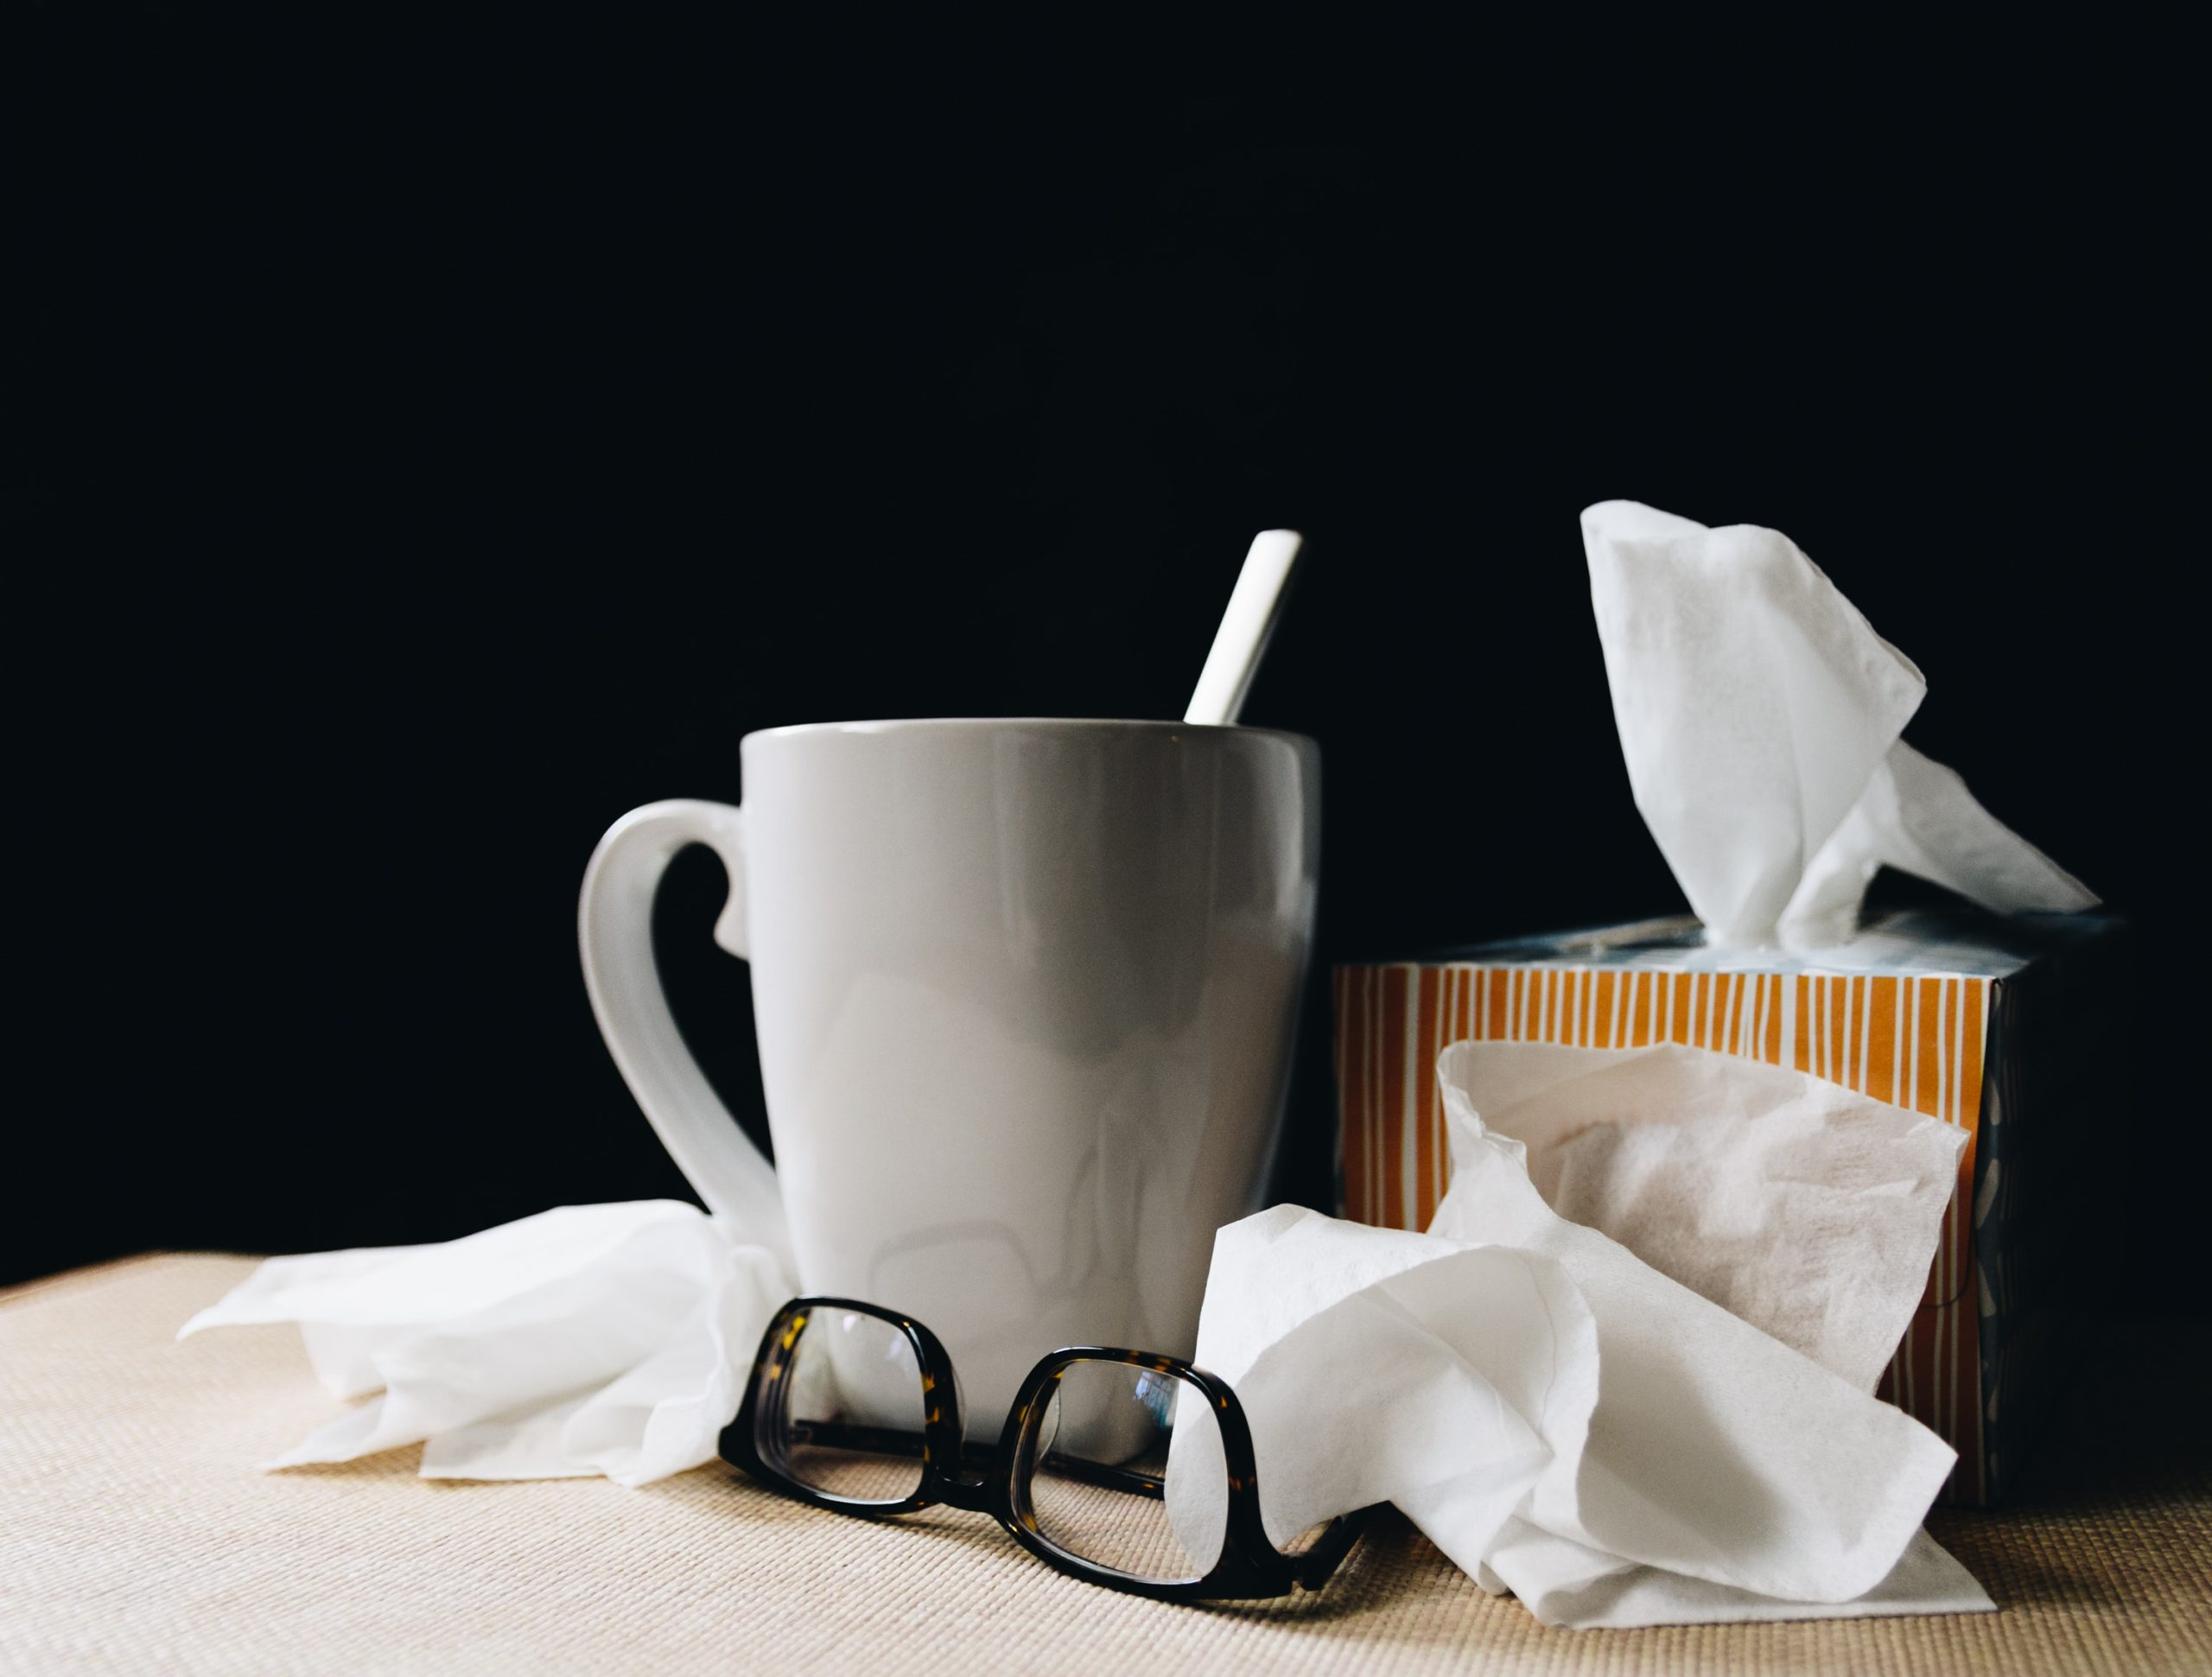 Mug with tissues and glasses